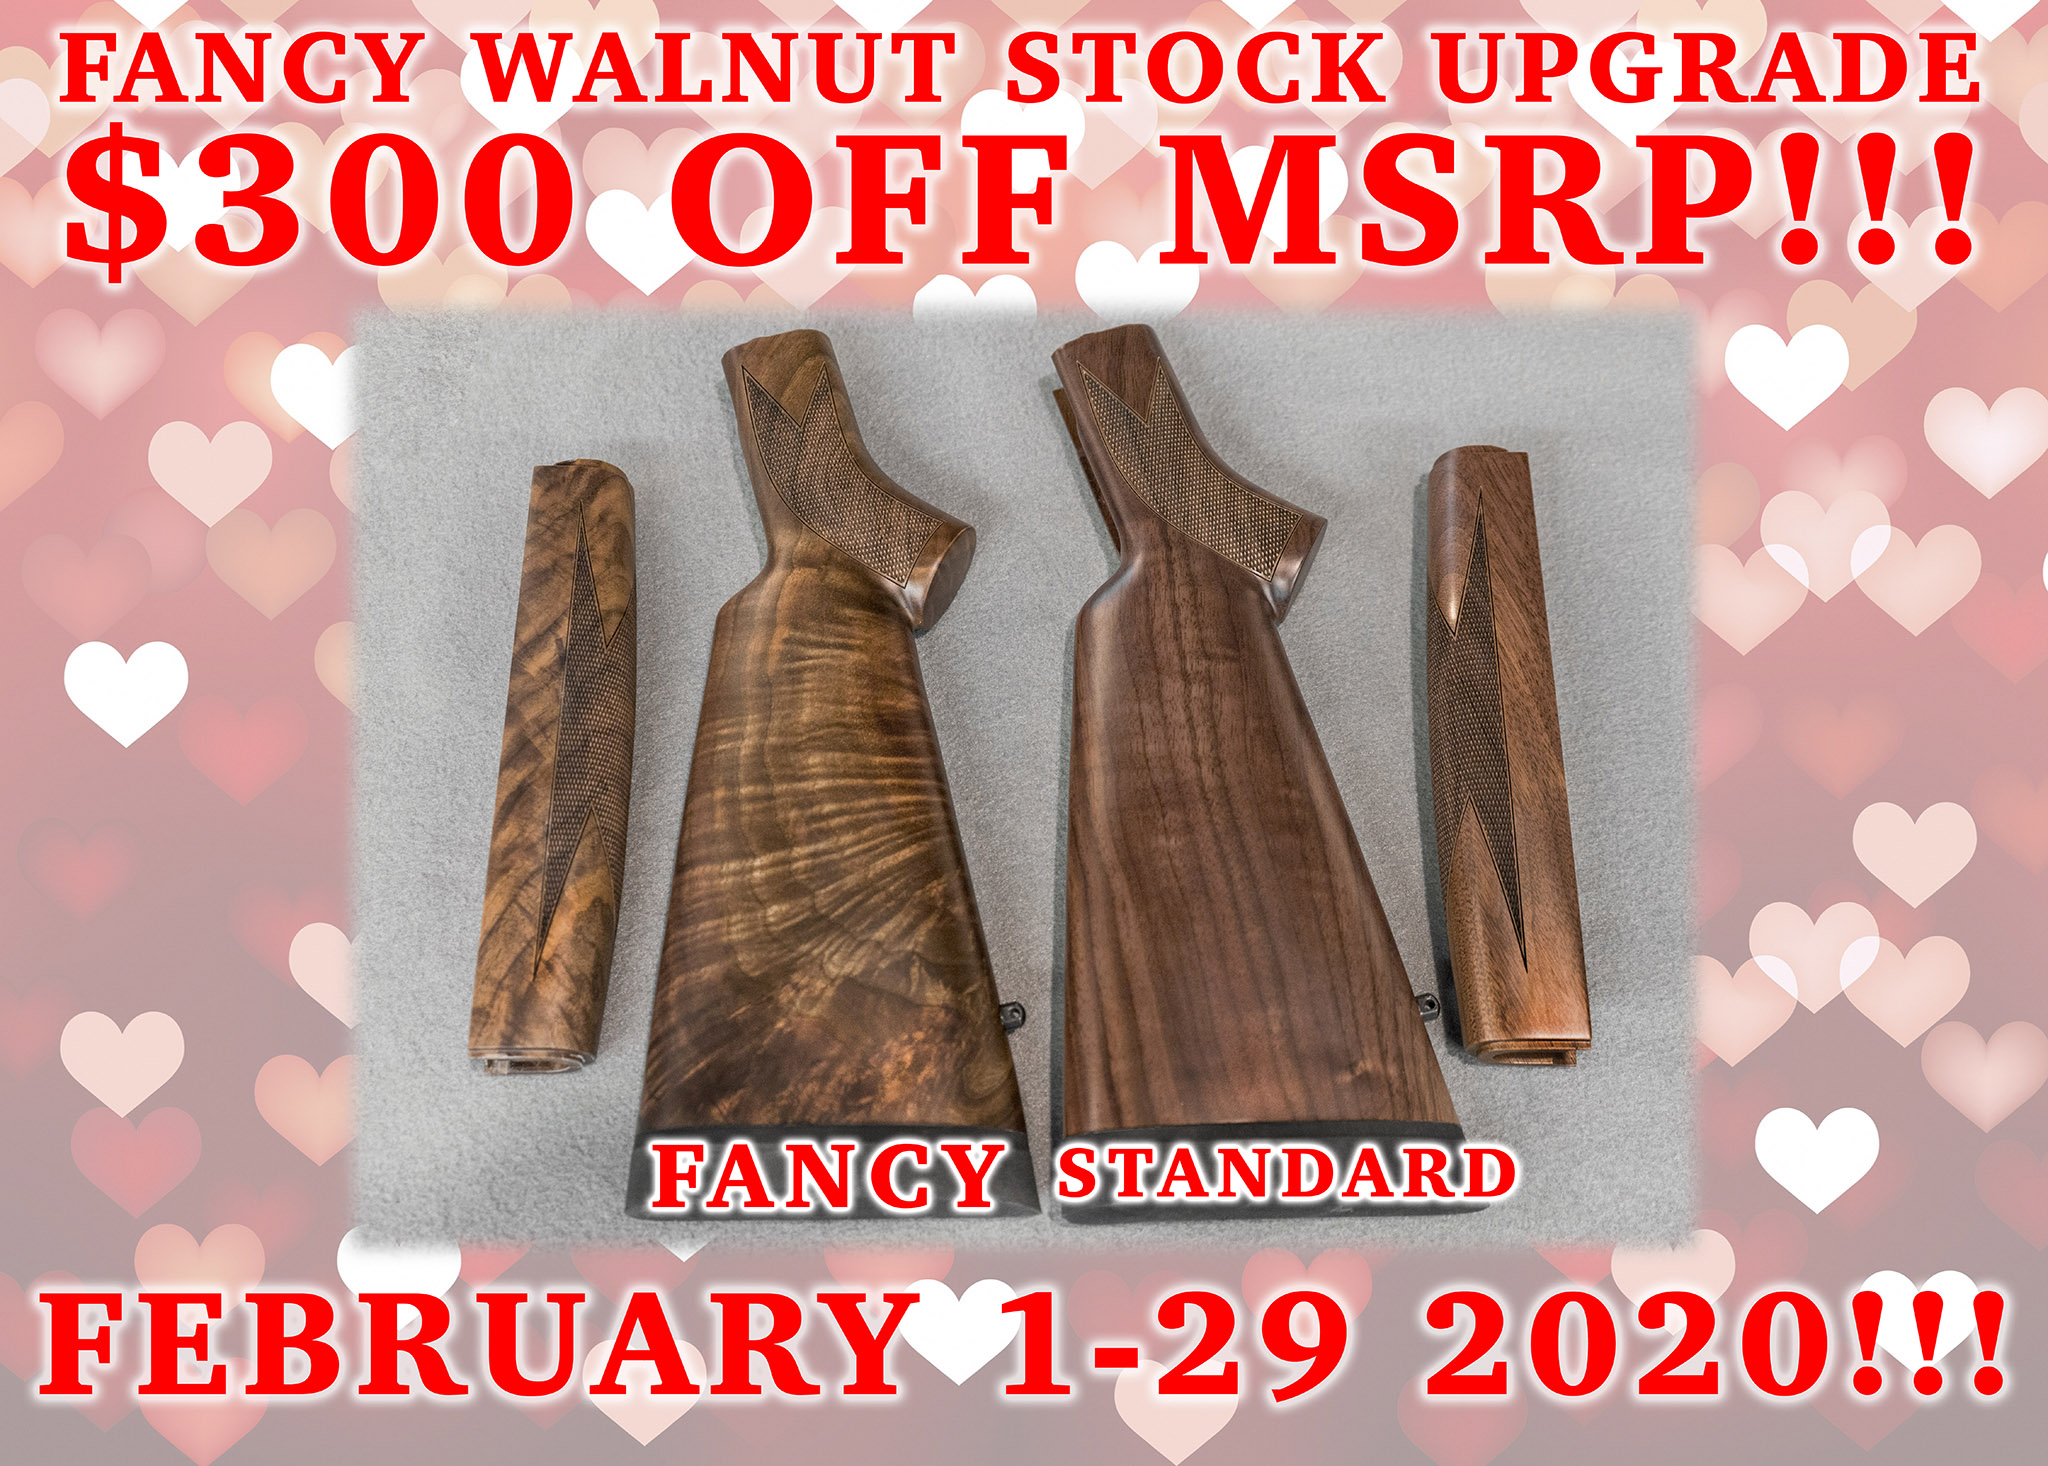 Big Horn Armory Unveils Half Price Special on all Fancy Walnut Stocks